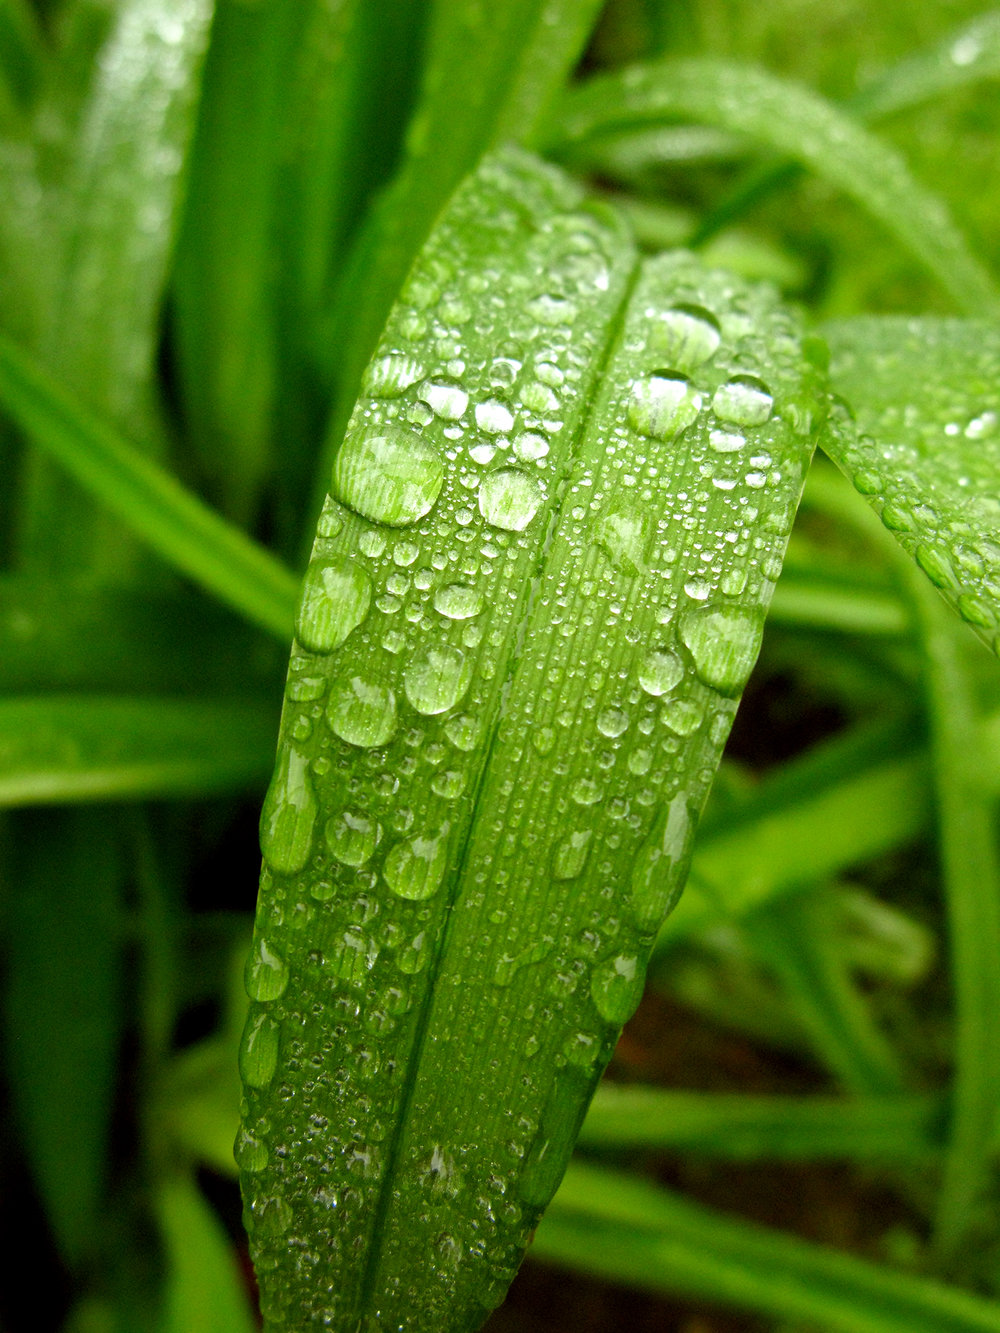 Raindrops On Grass 2.jpeg